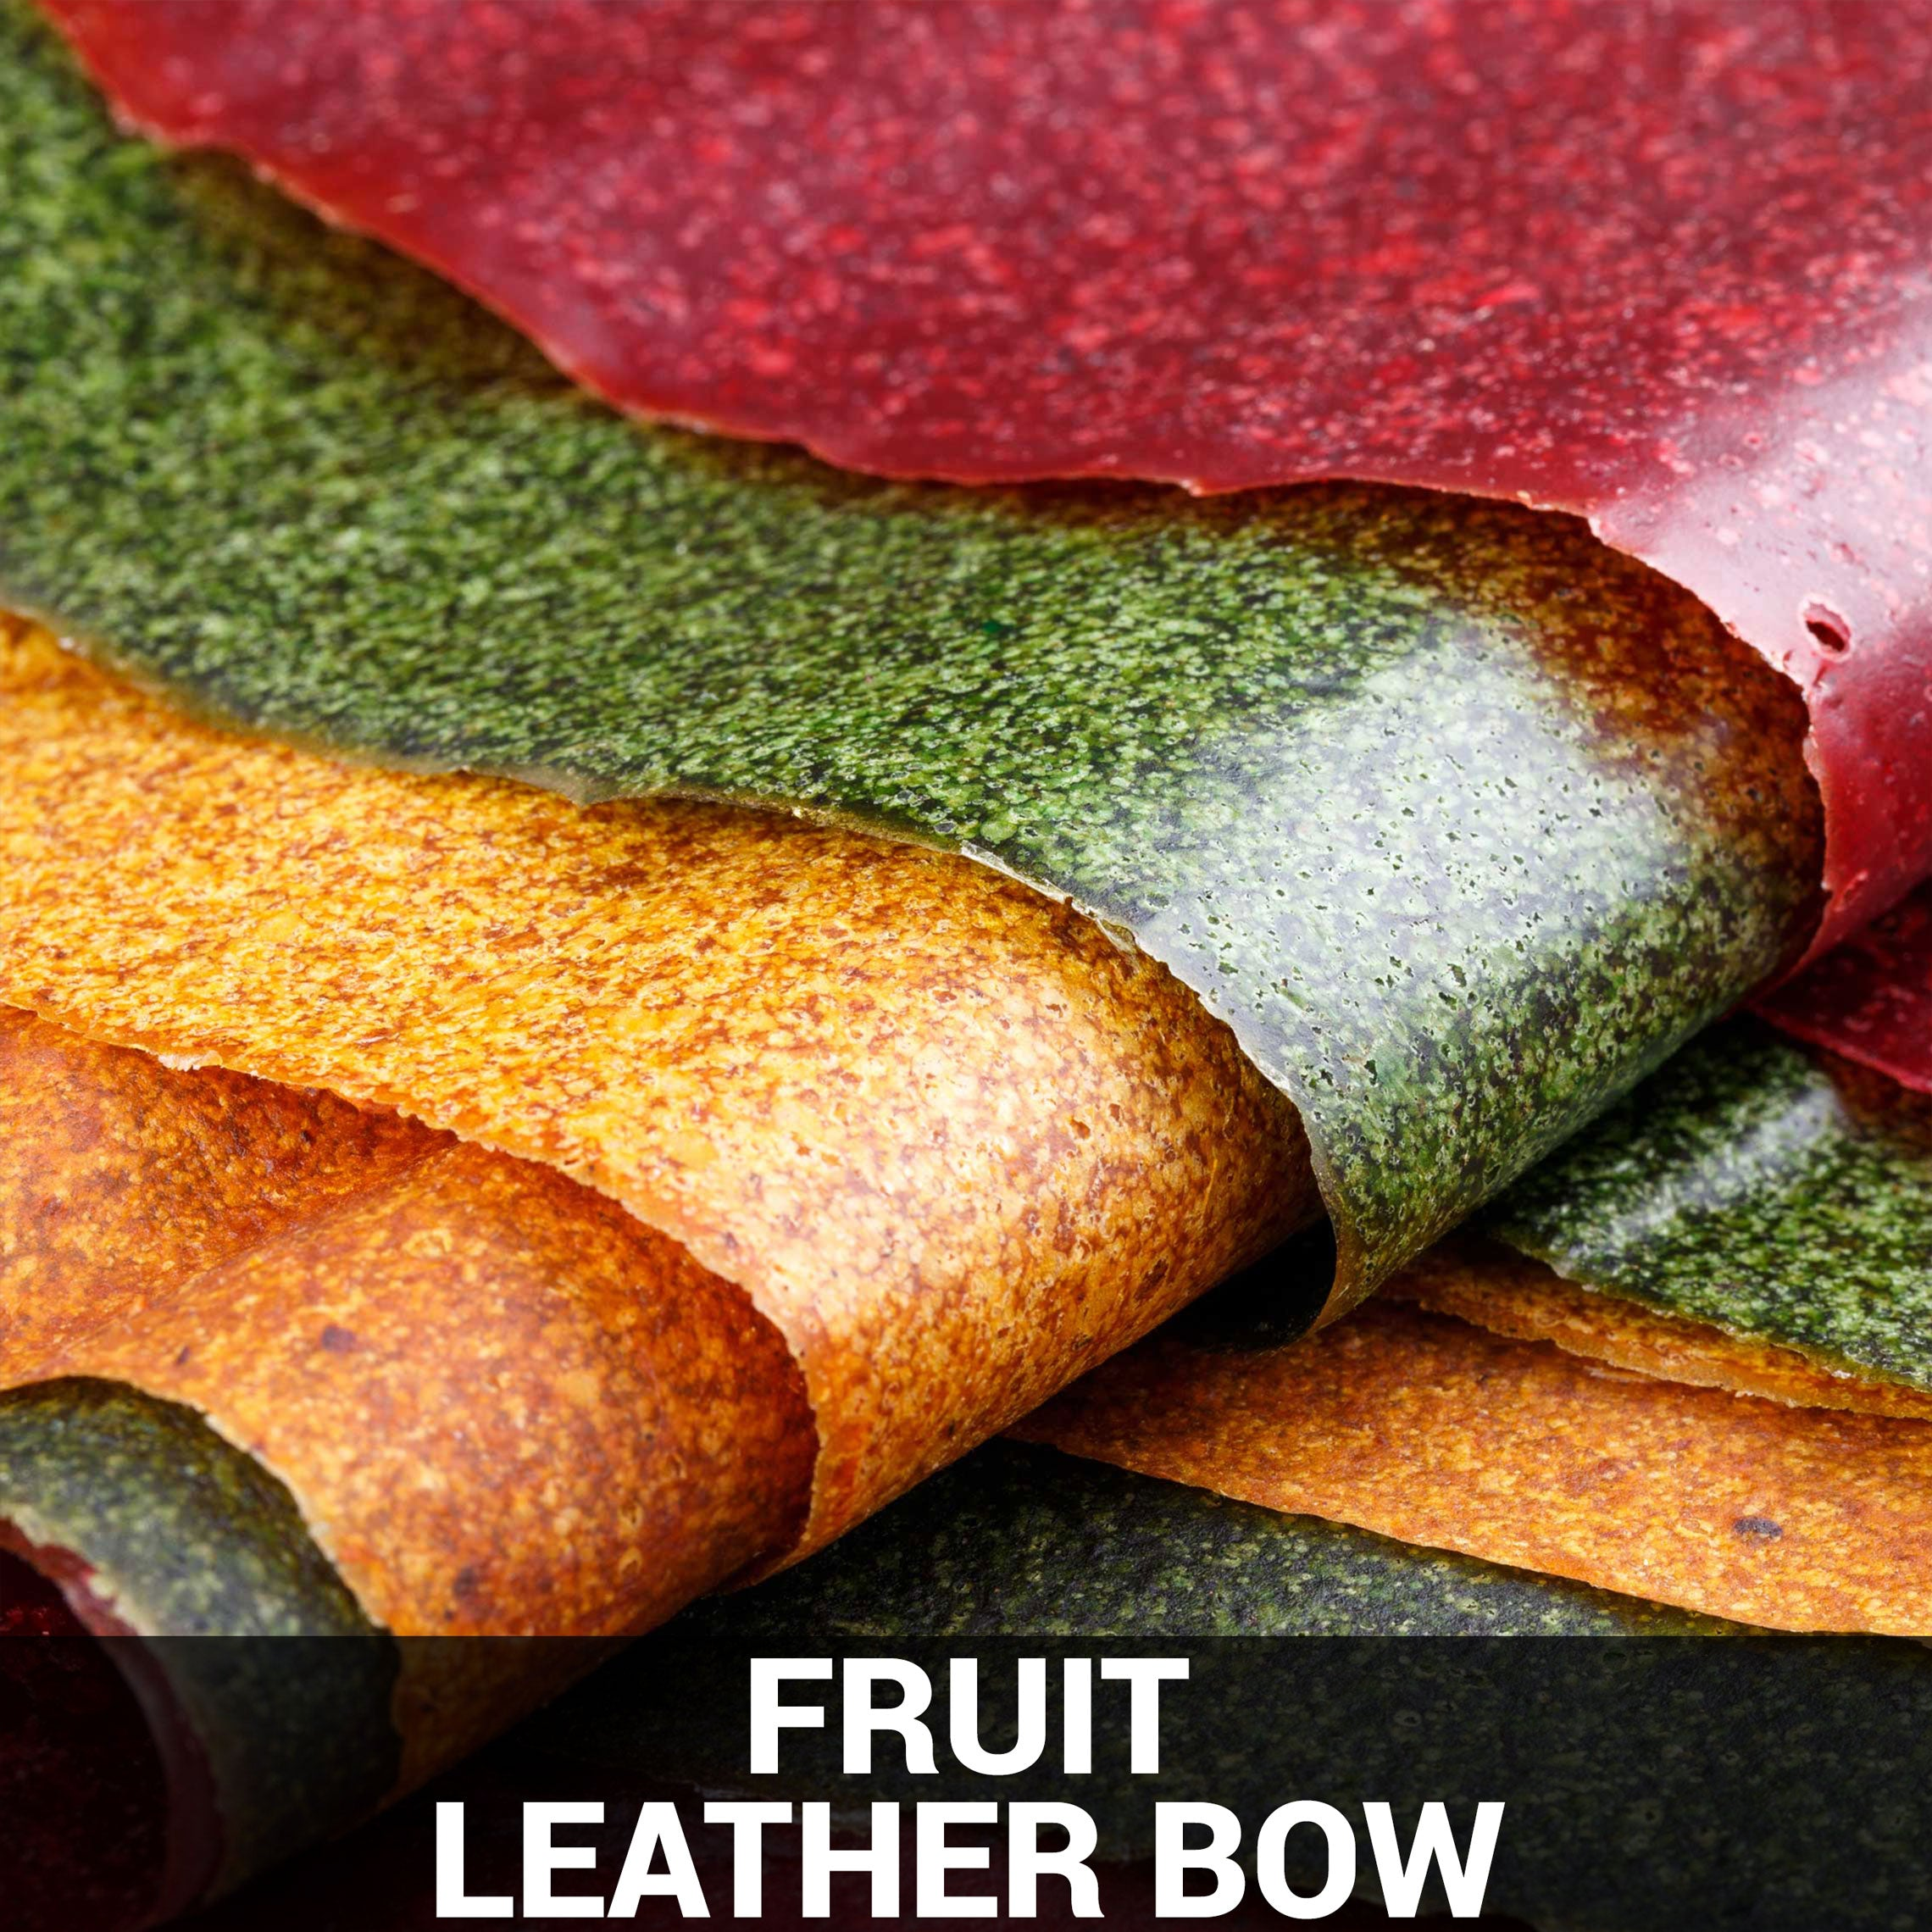 Fruit Leather Bow Recipe - Foods Alive